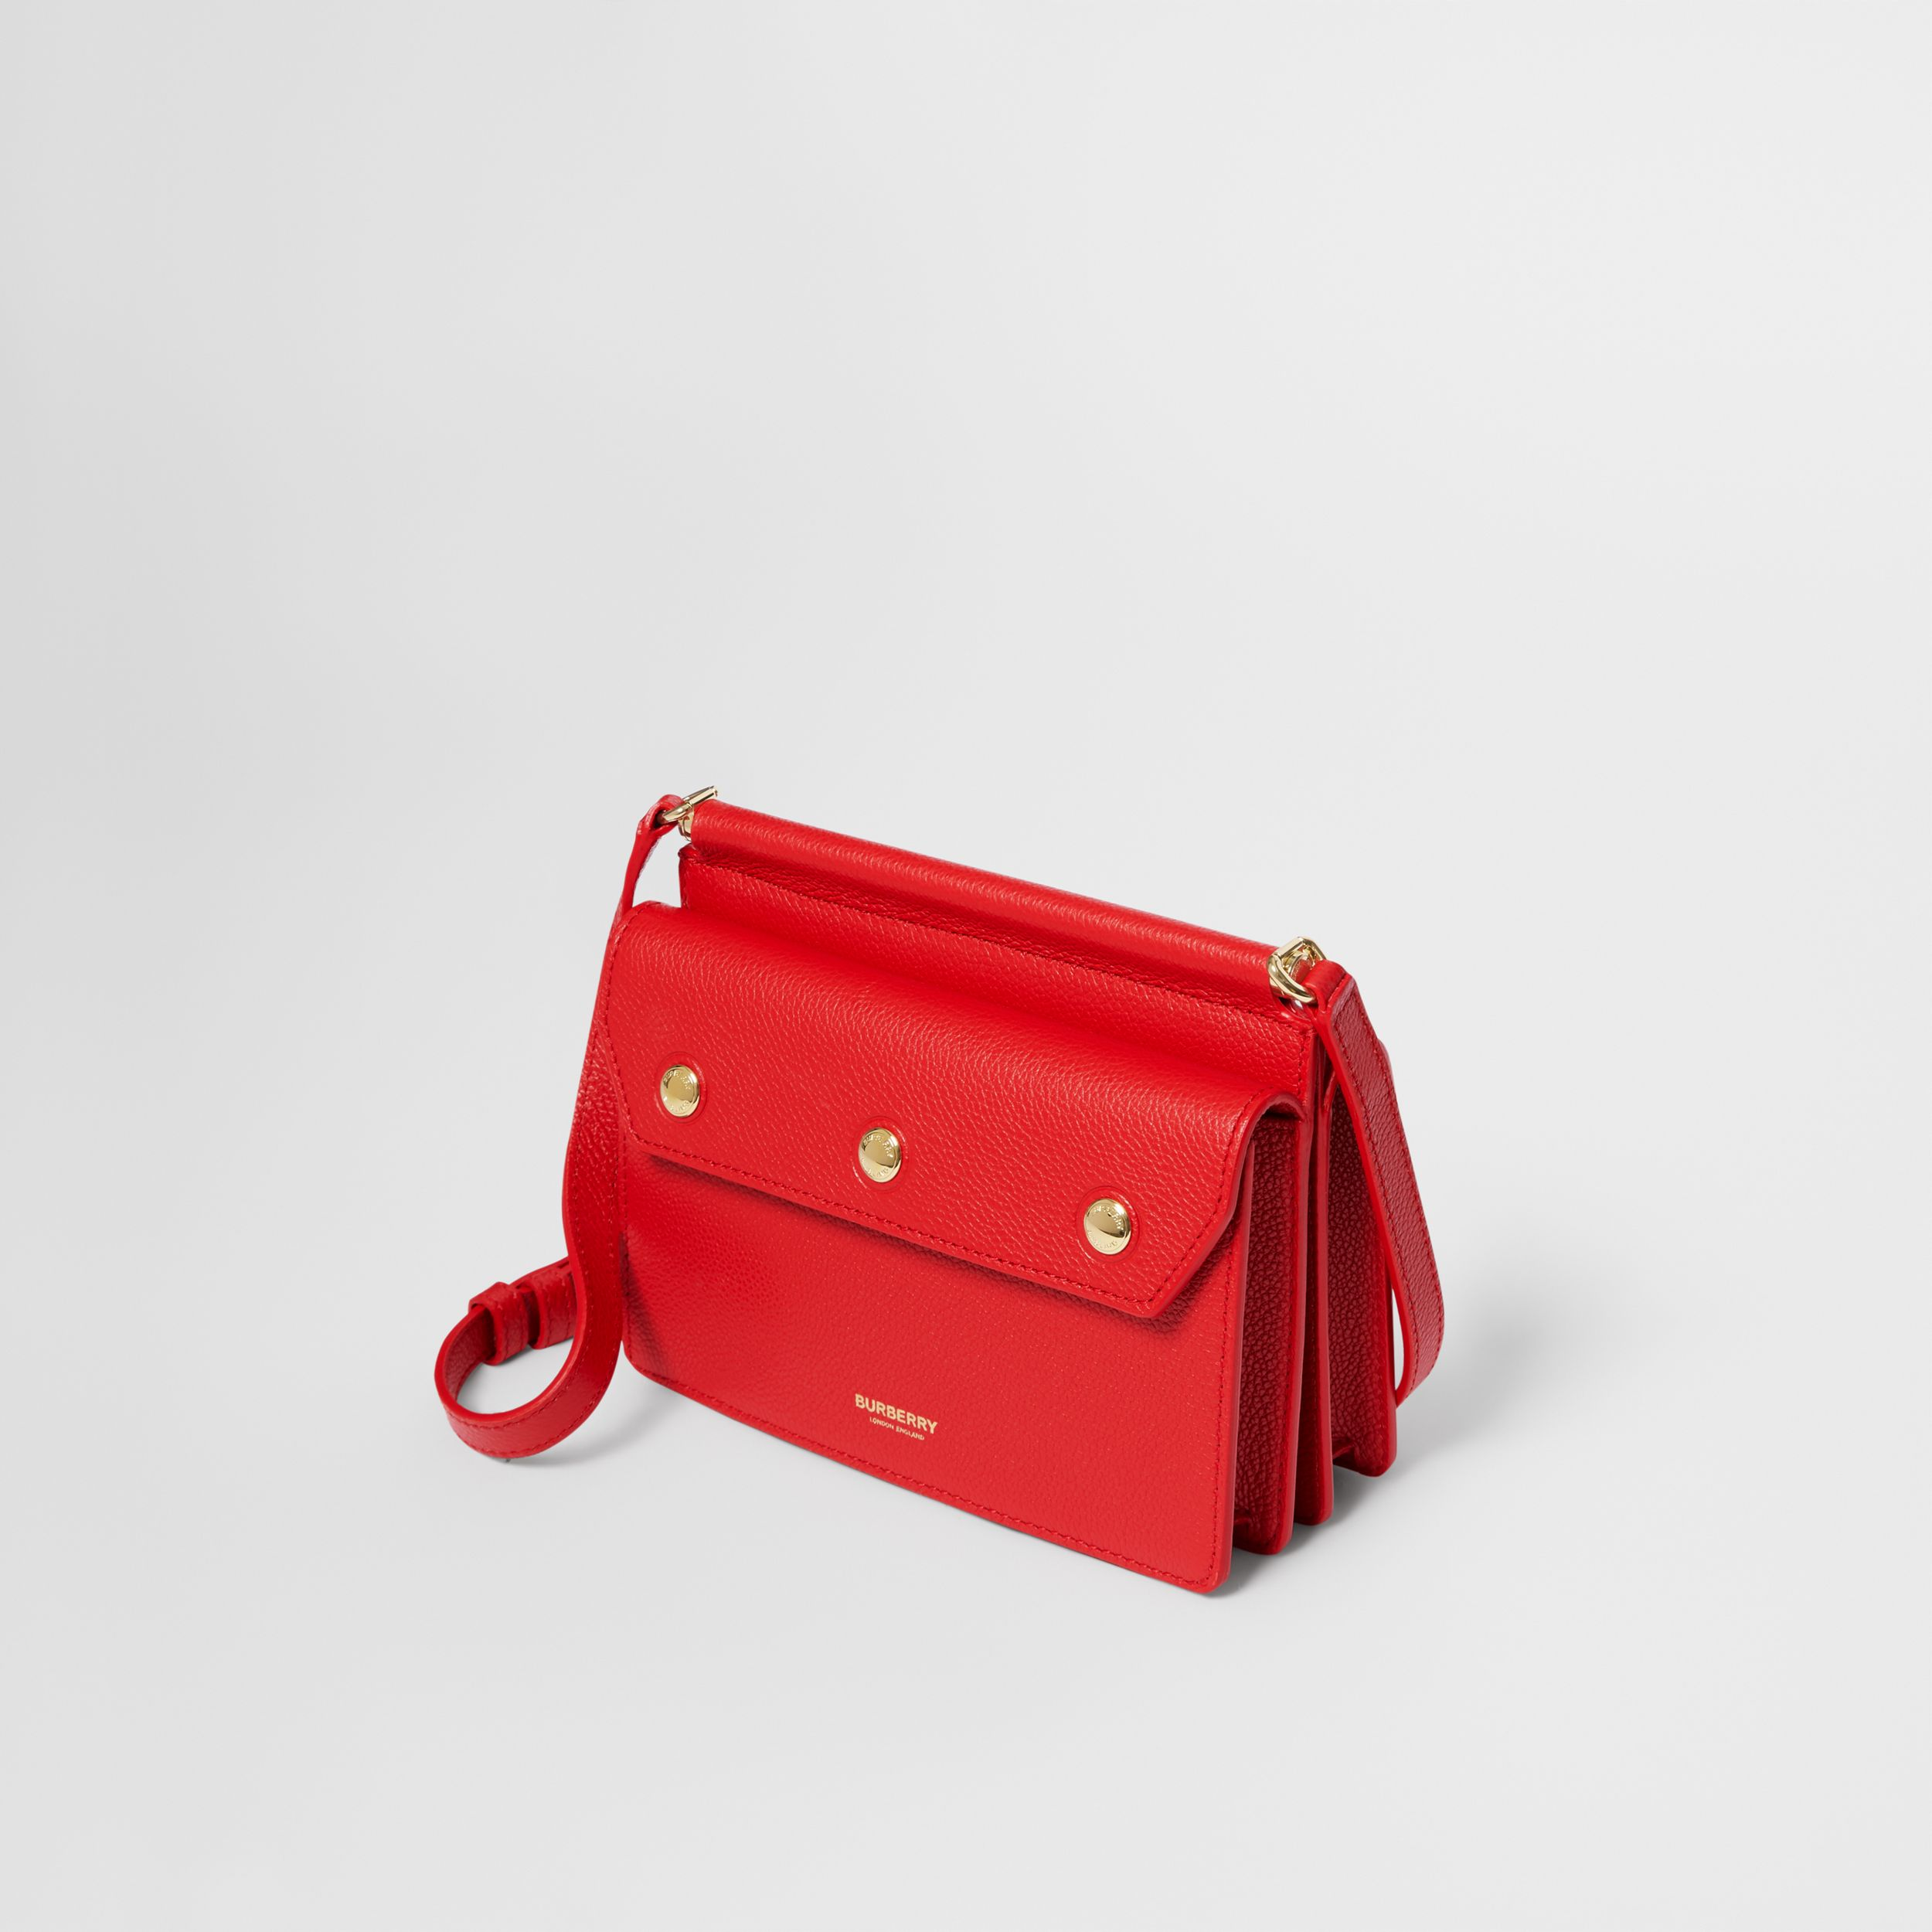 Mini Leather Title Bag with Pocket Detail in Bright Military Red - Women | Burberry - 4